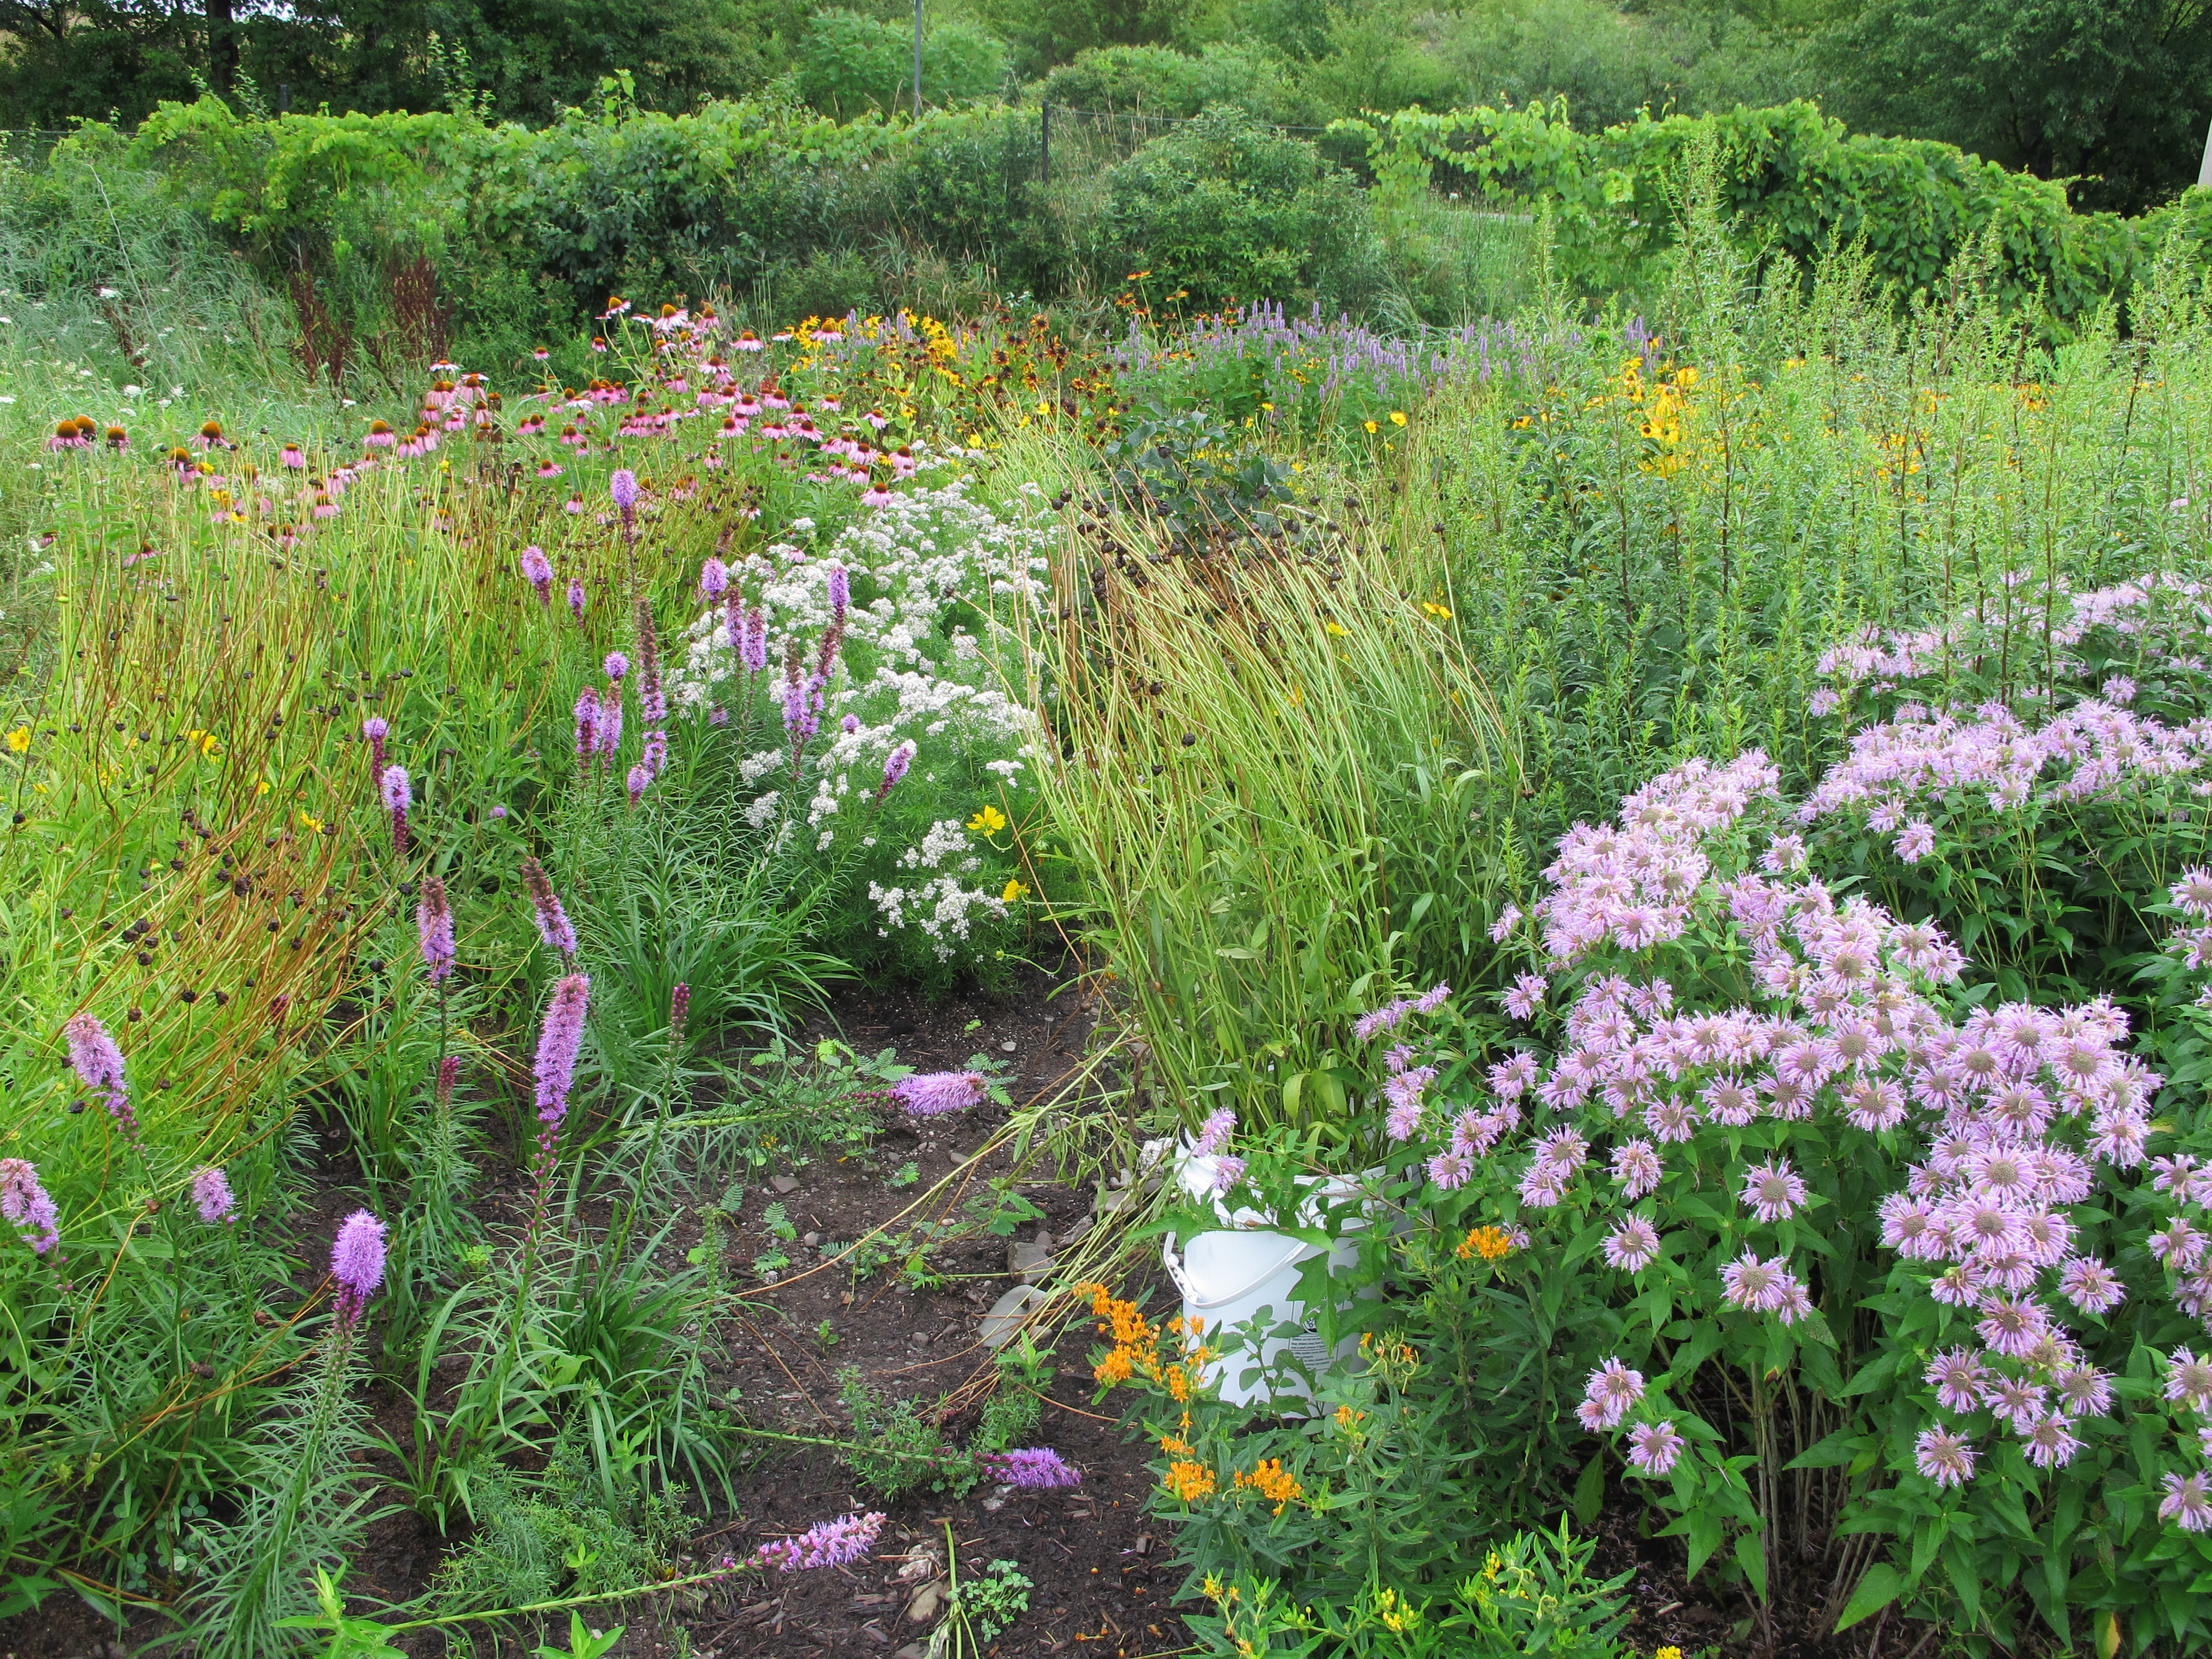 another angle of the pollinator patch shows orange milkweed flowers and white mountain mint flowers